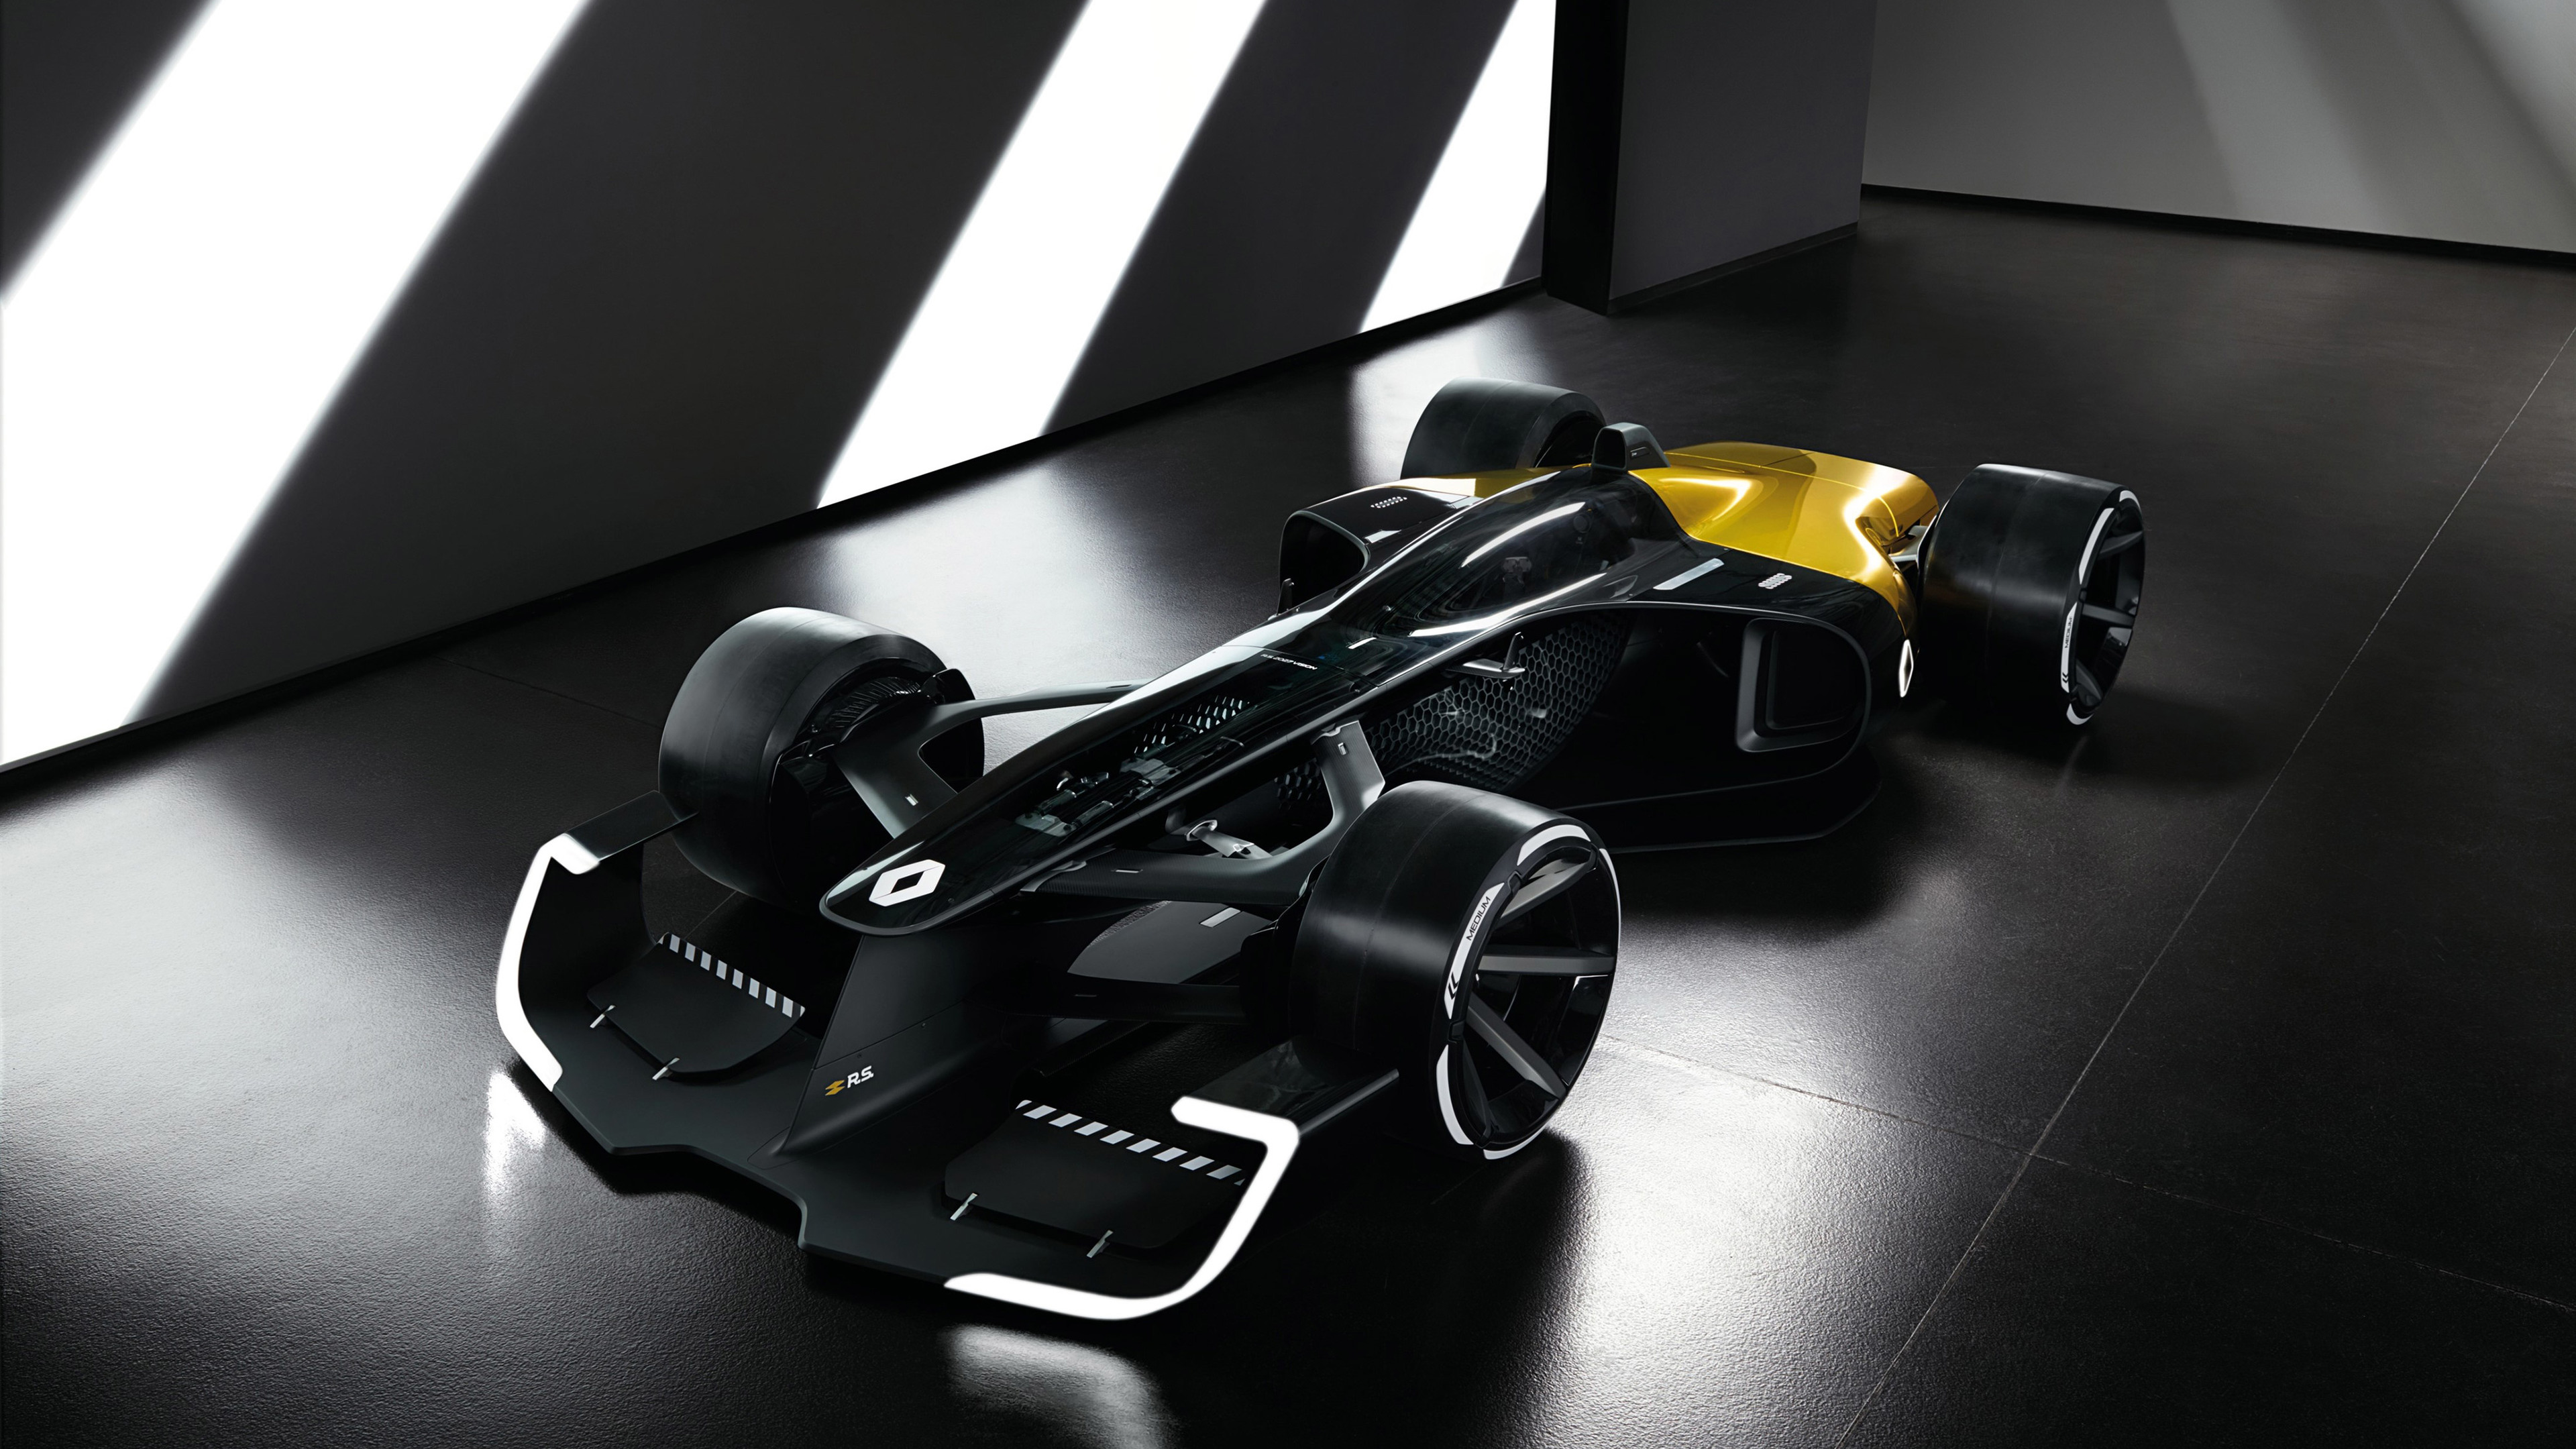 renault rs 2027 vision concept 1539105233 - Renault RS 2027 Vision Concept - renault wallpapers, renault rs 2027 vision wallpapers, hd-wallpapers, concept cars wallpapers, 4k-wallpapers, 2017 cars wallpapers